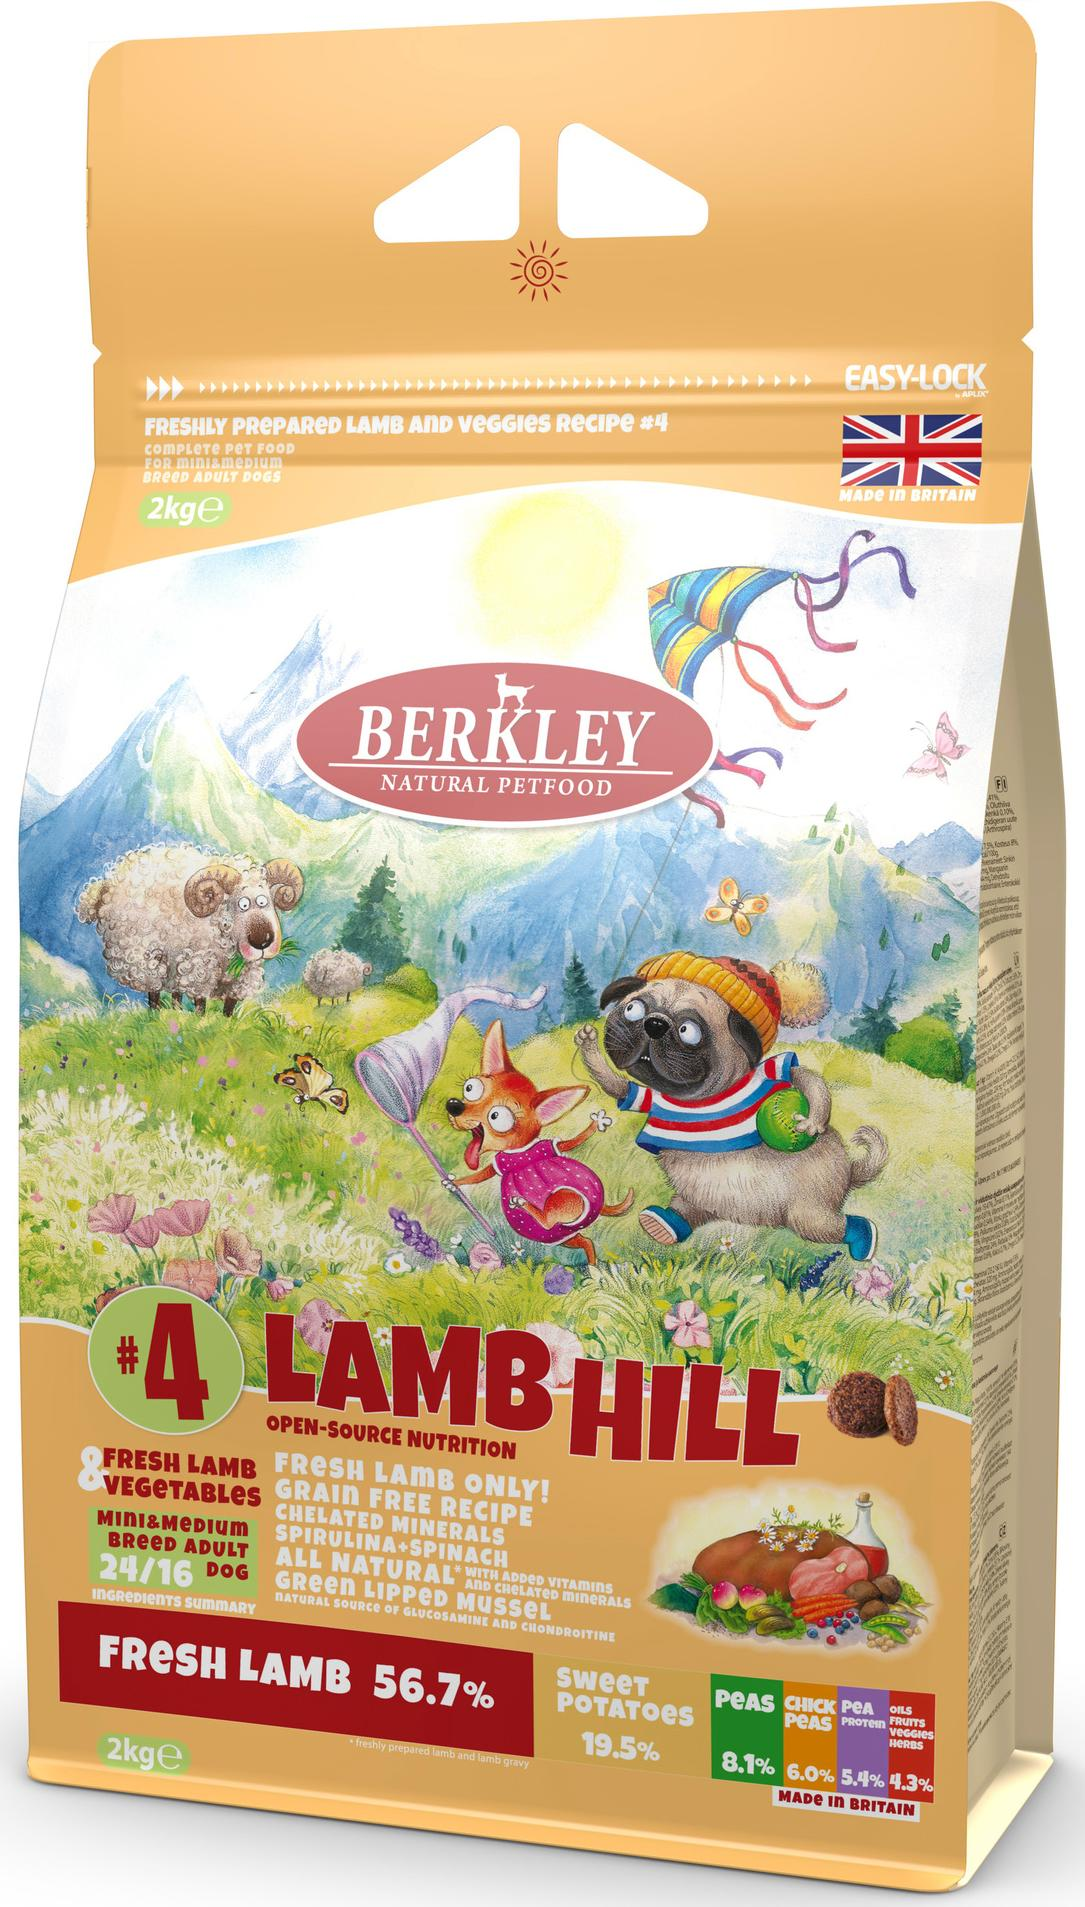 Berkley Lamb Hill #4